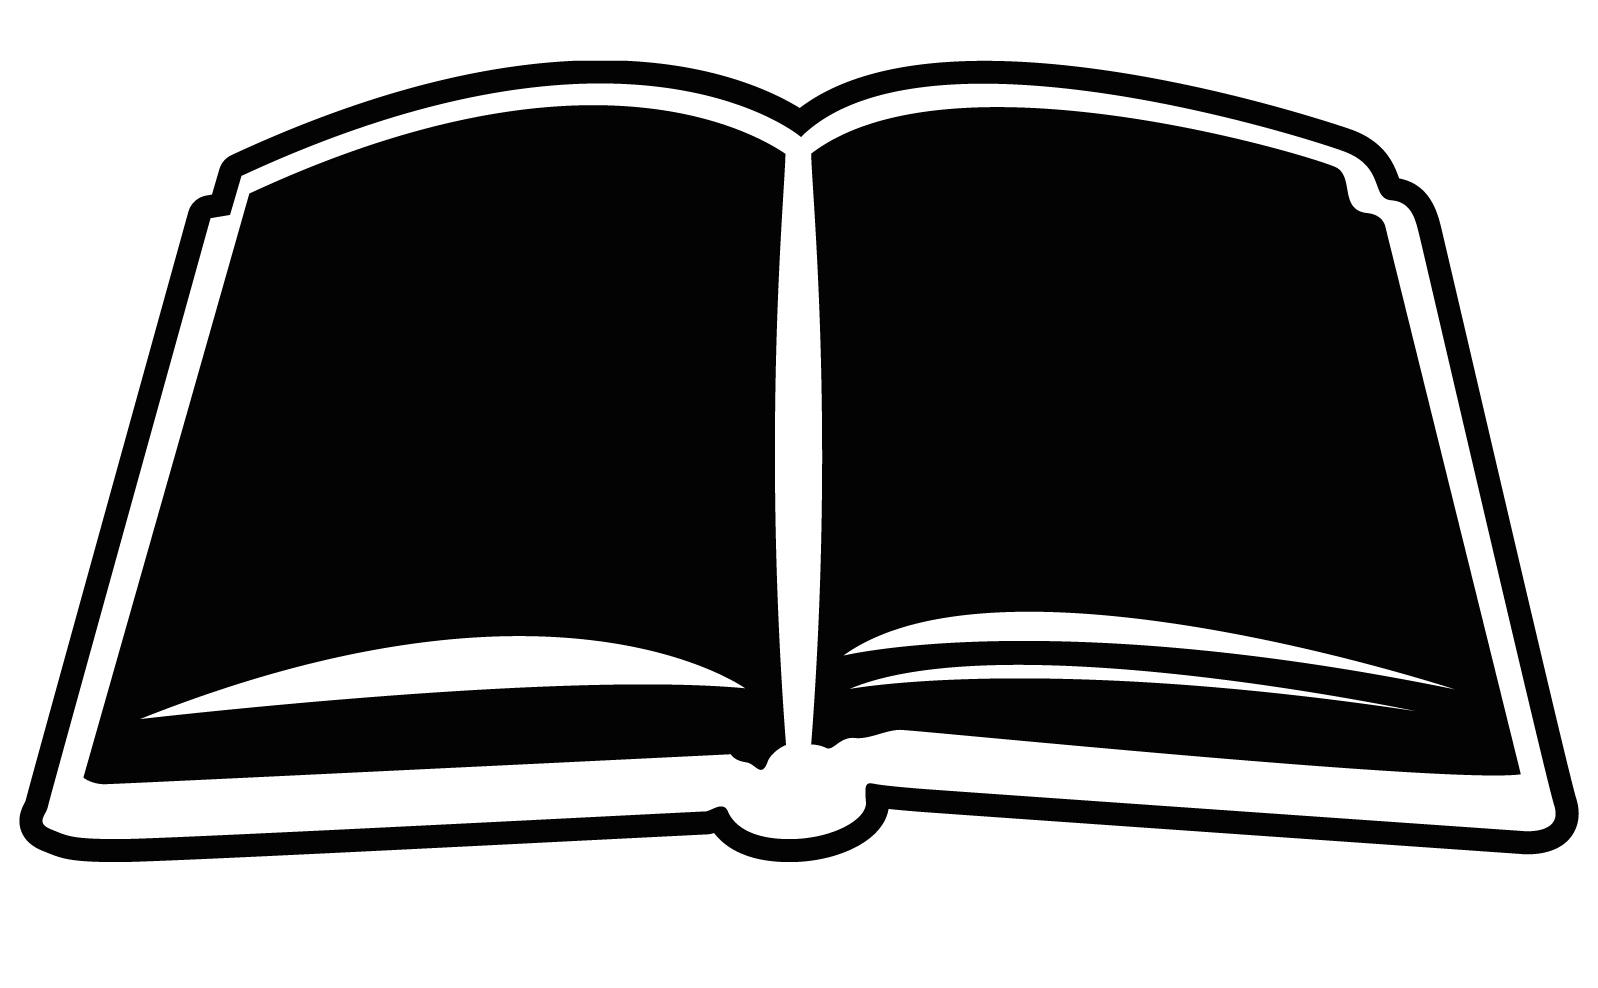 1598x988 Top 10 Open Book Clip Art Color Free Clipart Images Library